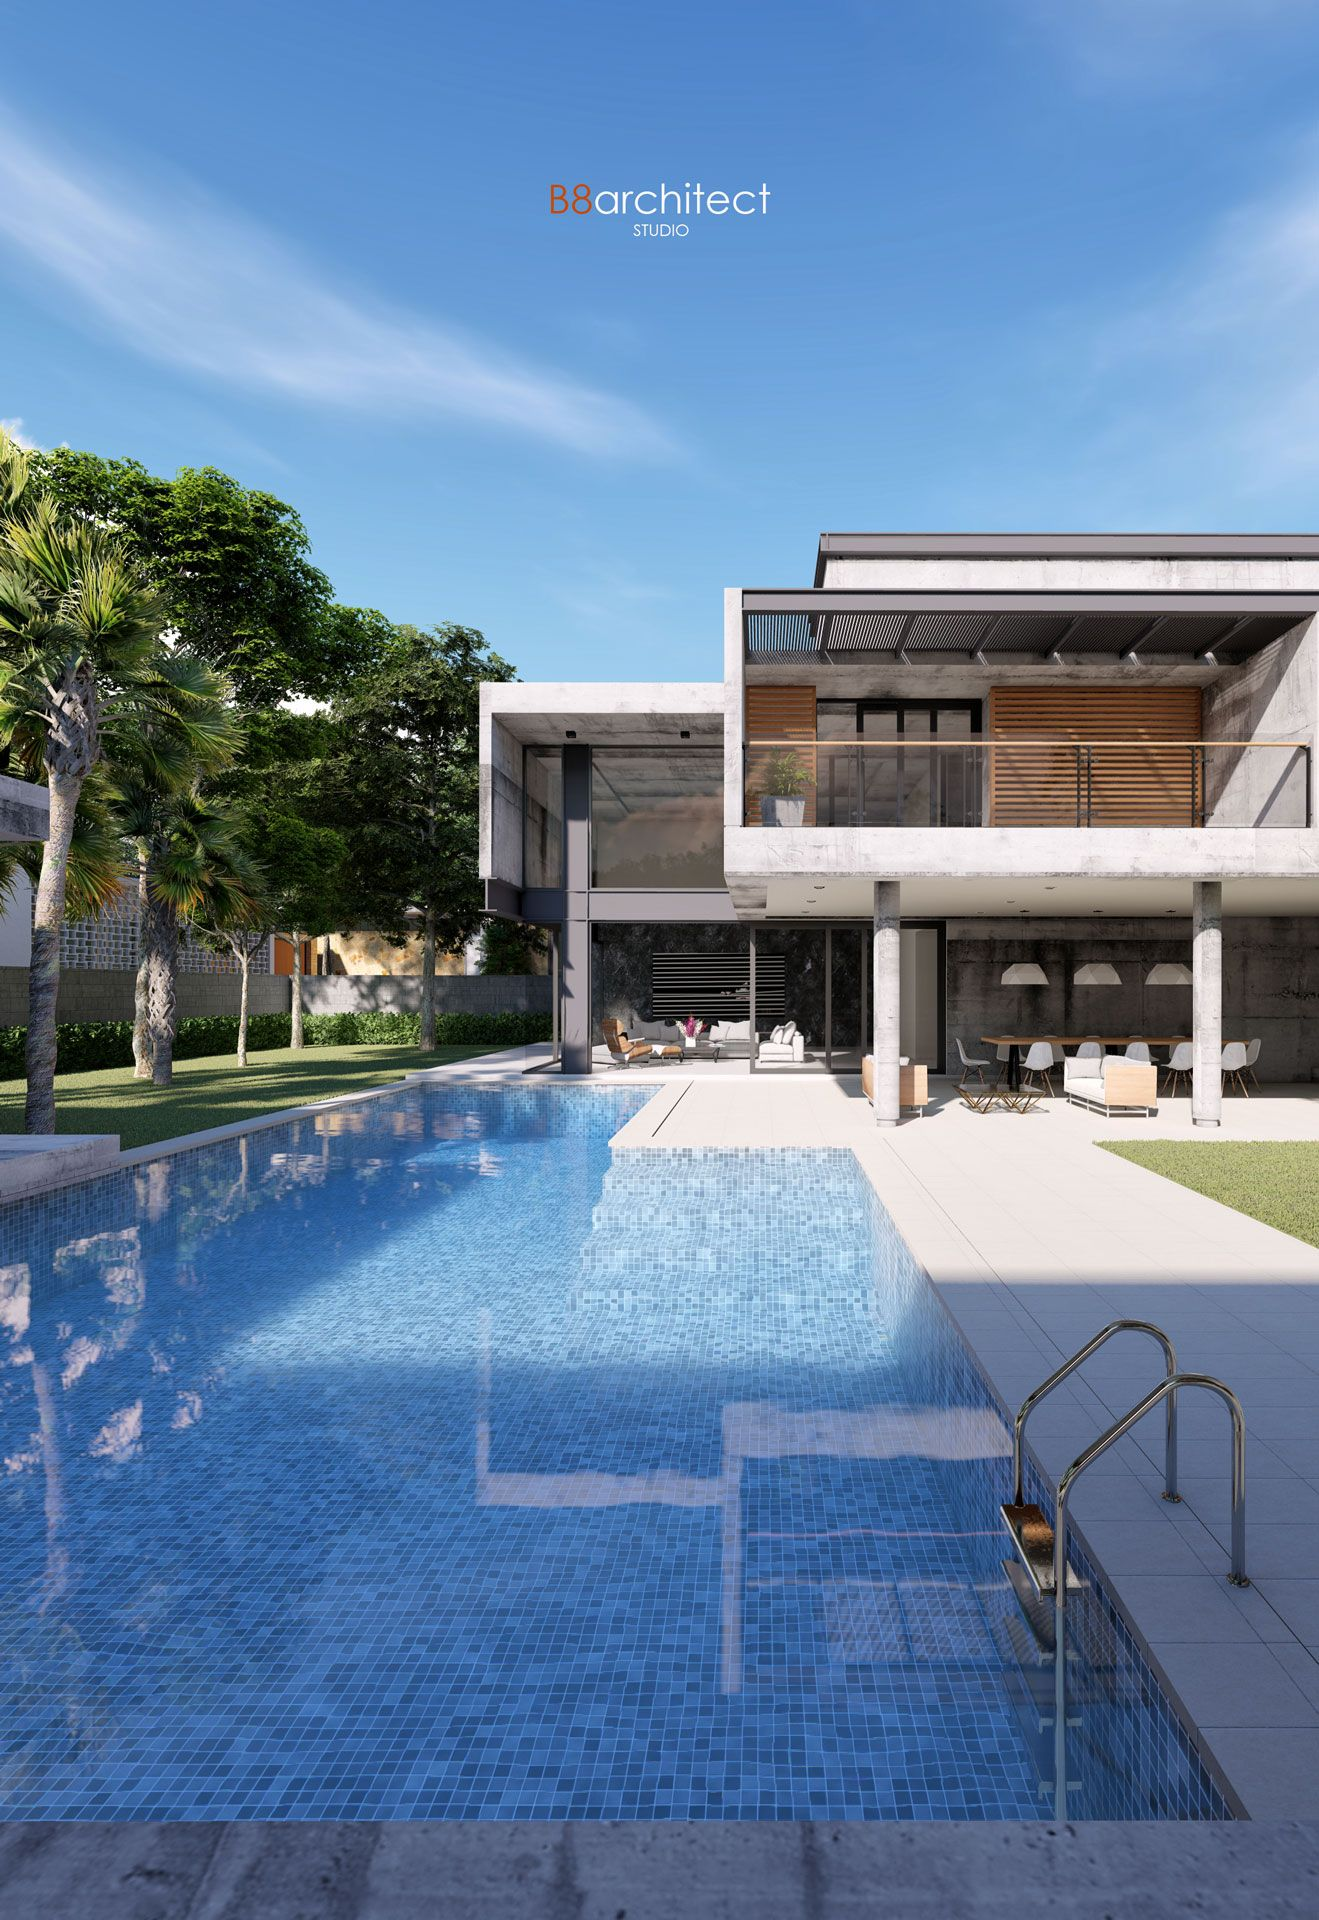 Residential #House, #rendered in #Lumion 8 5 by B8architect